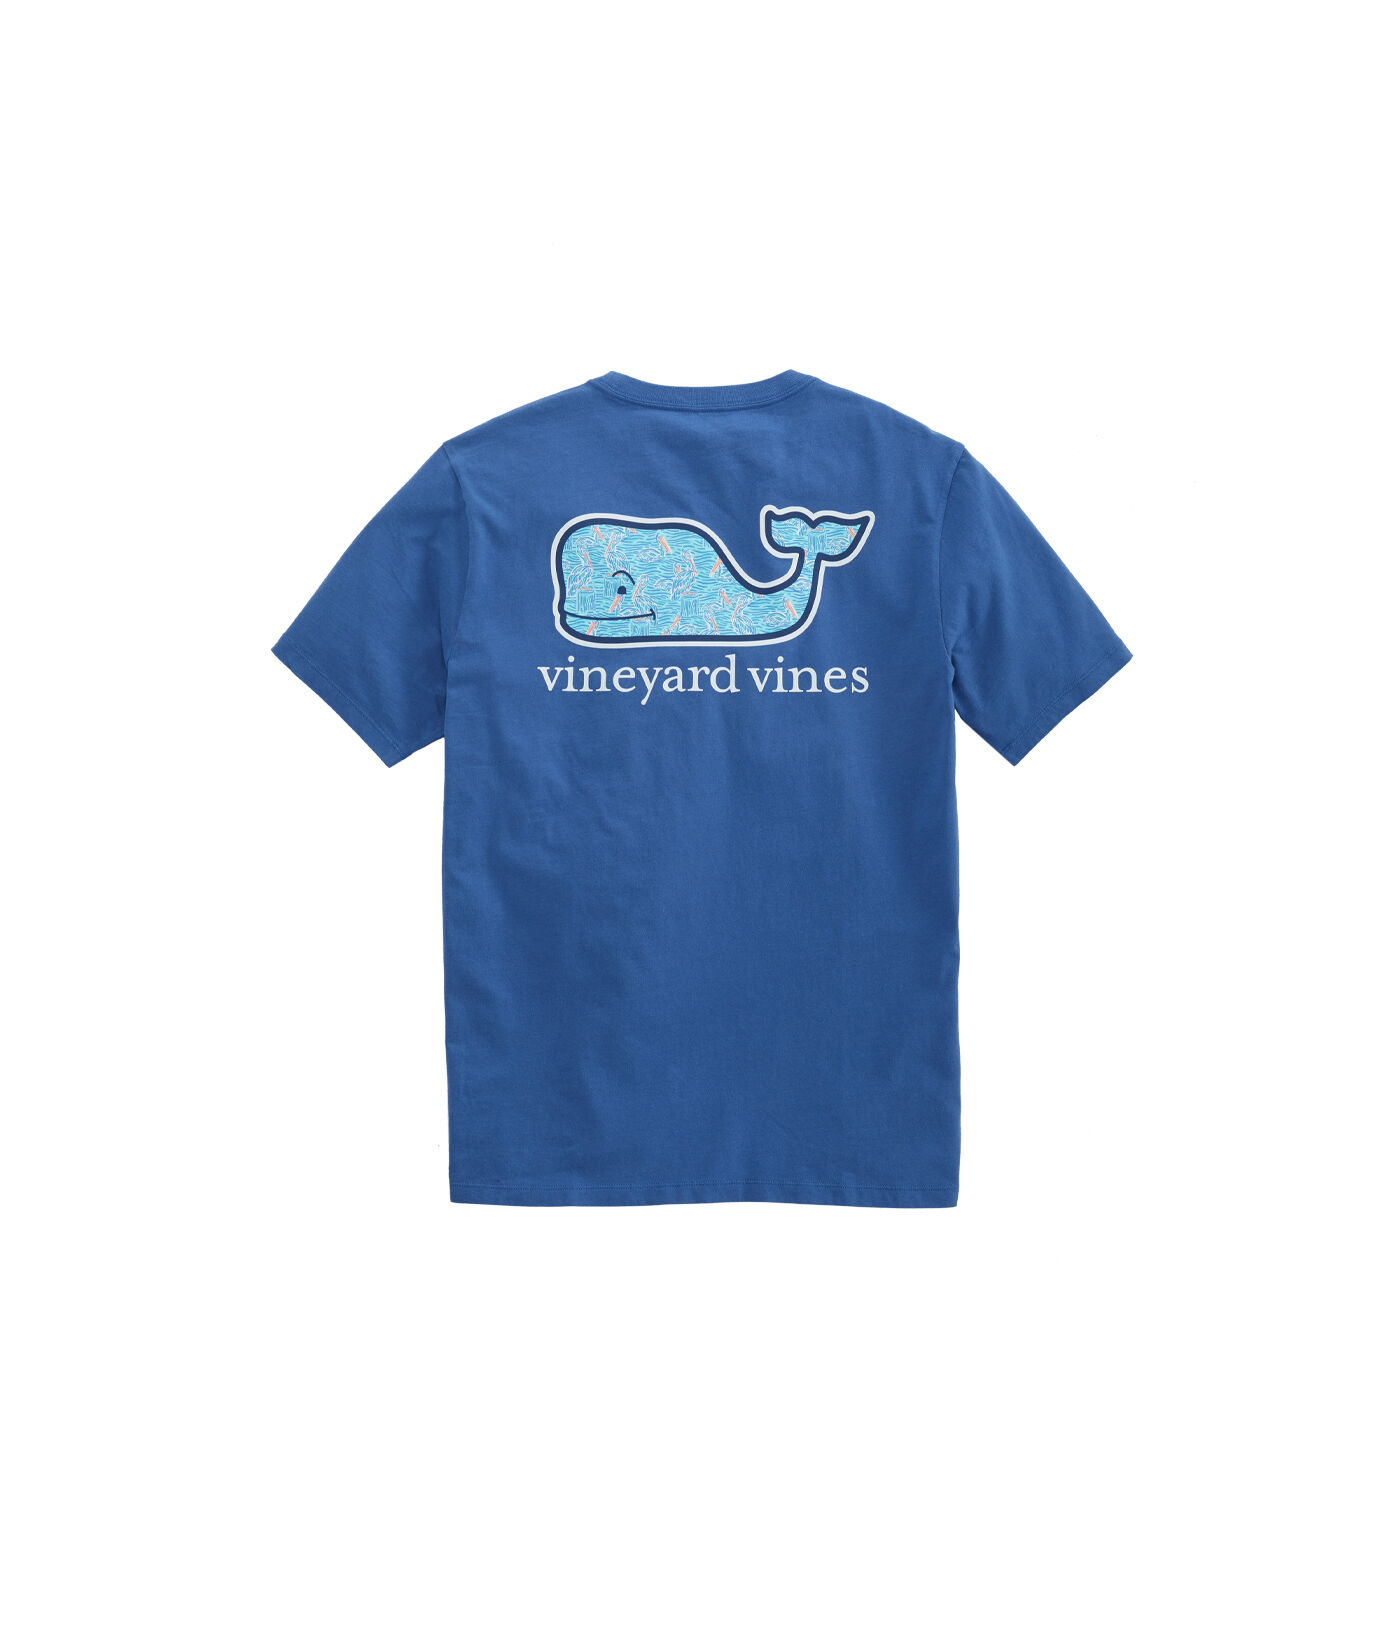 Pelican T Shirts Design Cool Im in Love with Pelican Tee Shirt Best Gift for Someone Special